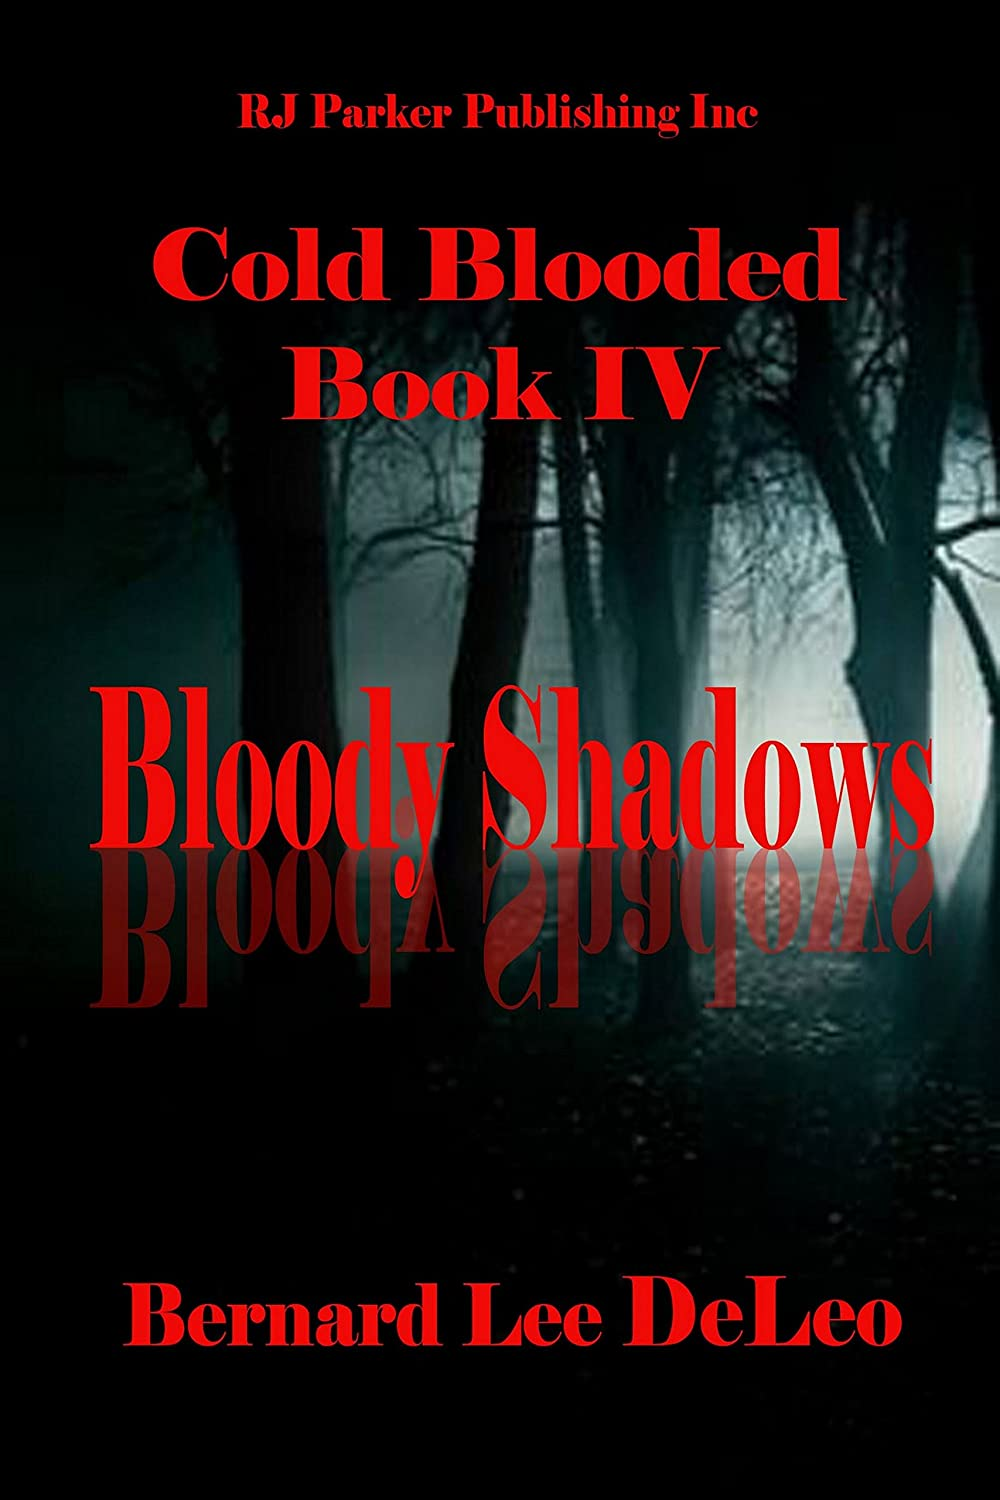 Cold Blooded IV: Bloody Shadows by Bernard Lee DeLeo